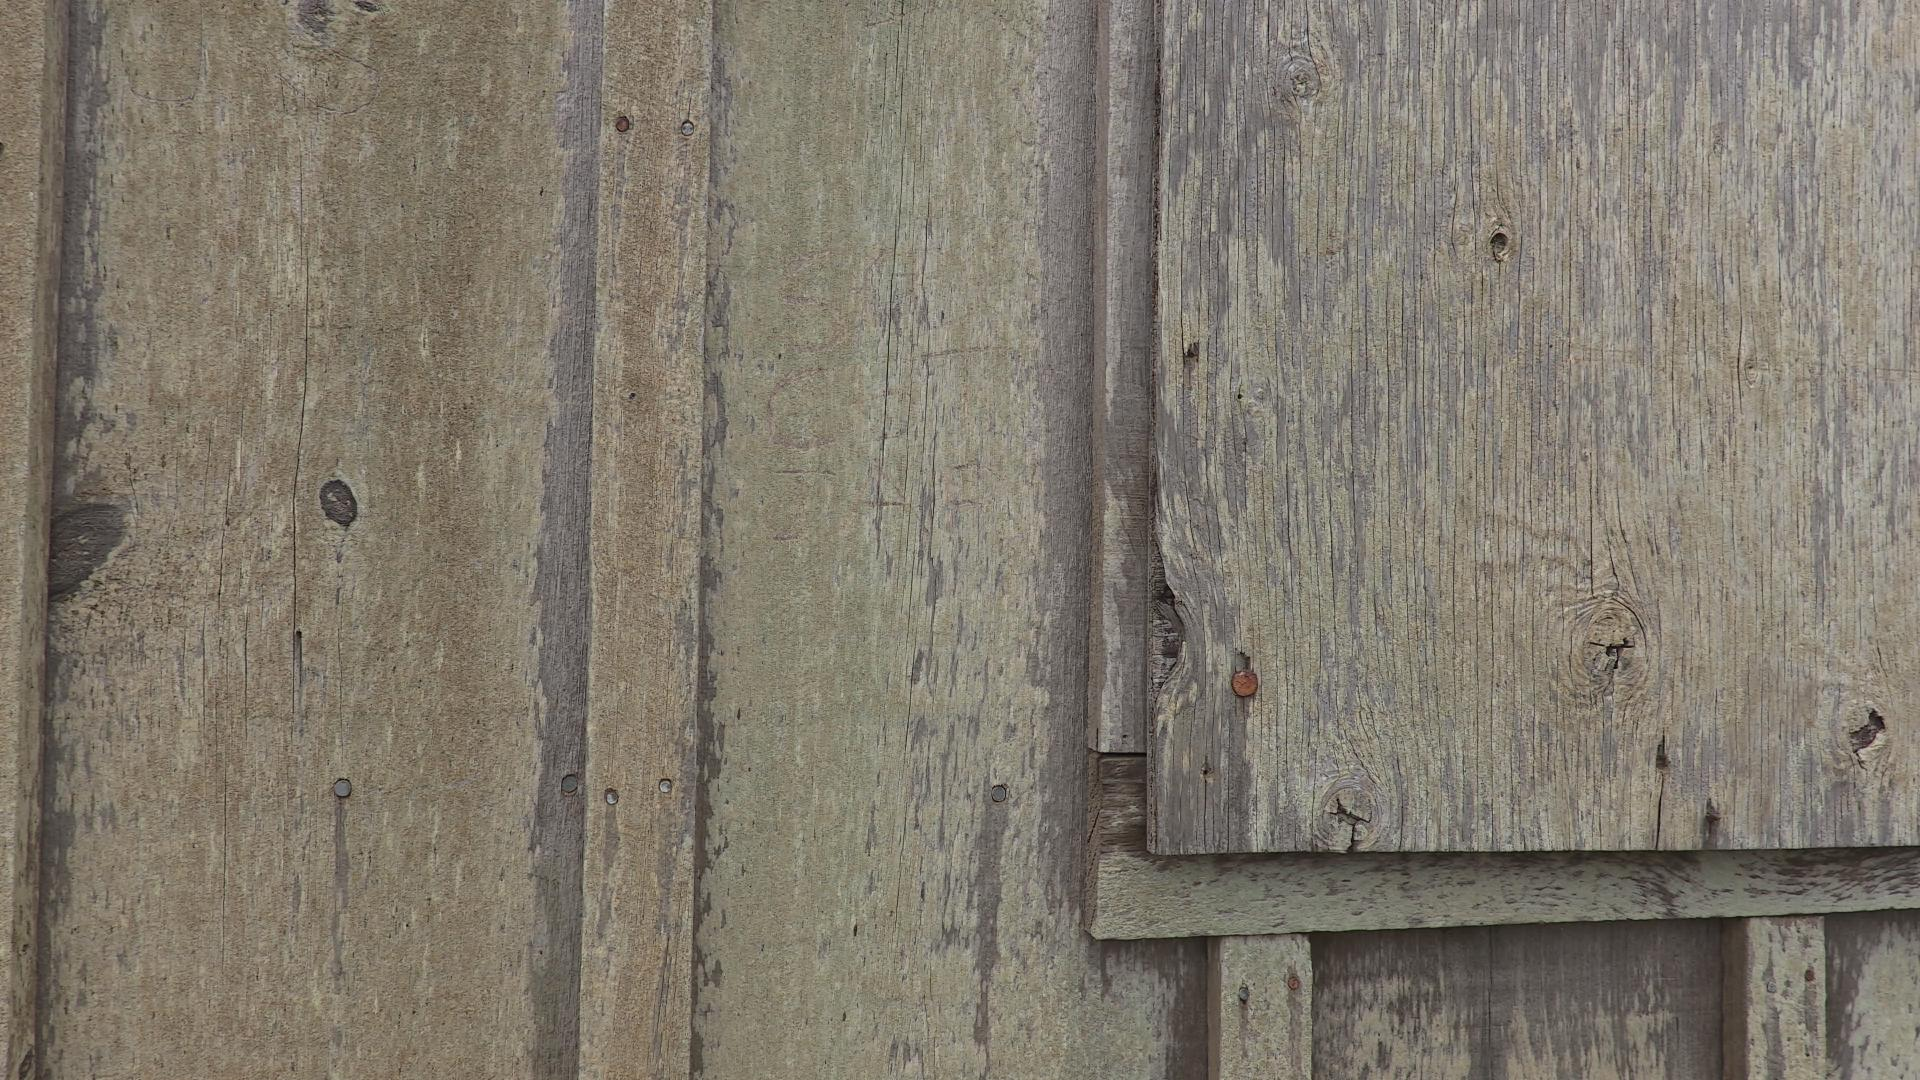 Wooden slats are shown close-up in a detail shot with weathered and rusty nails and fastners.